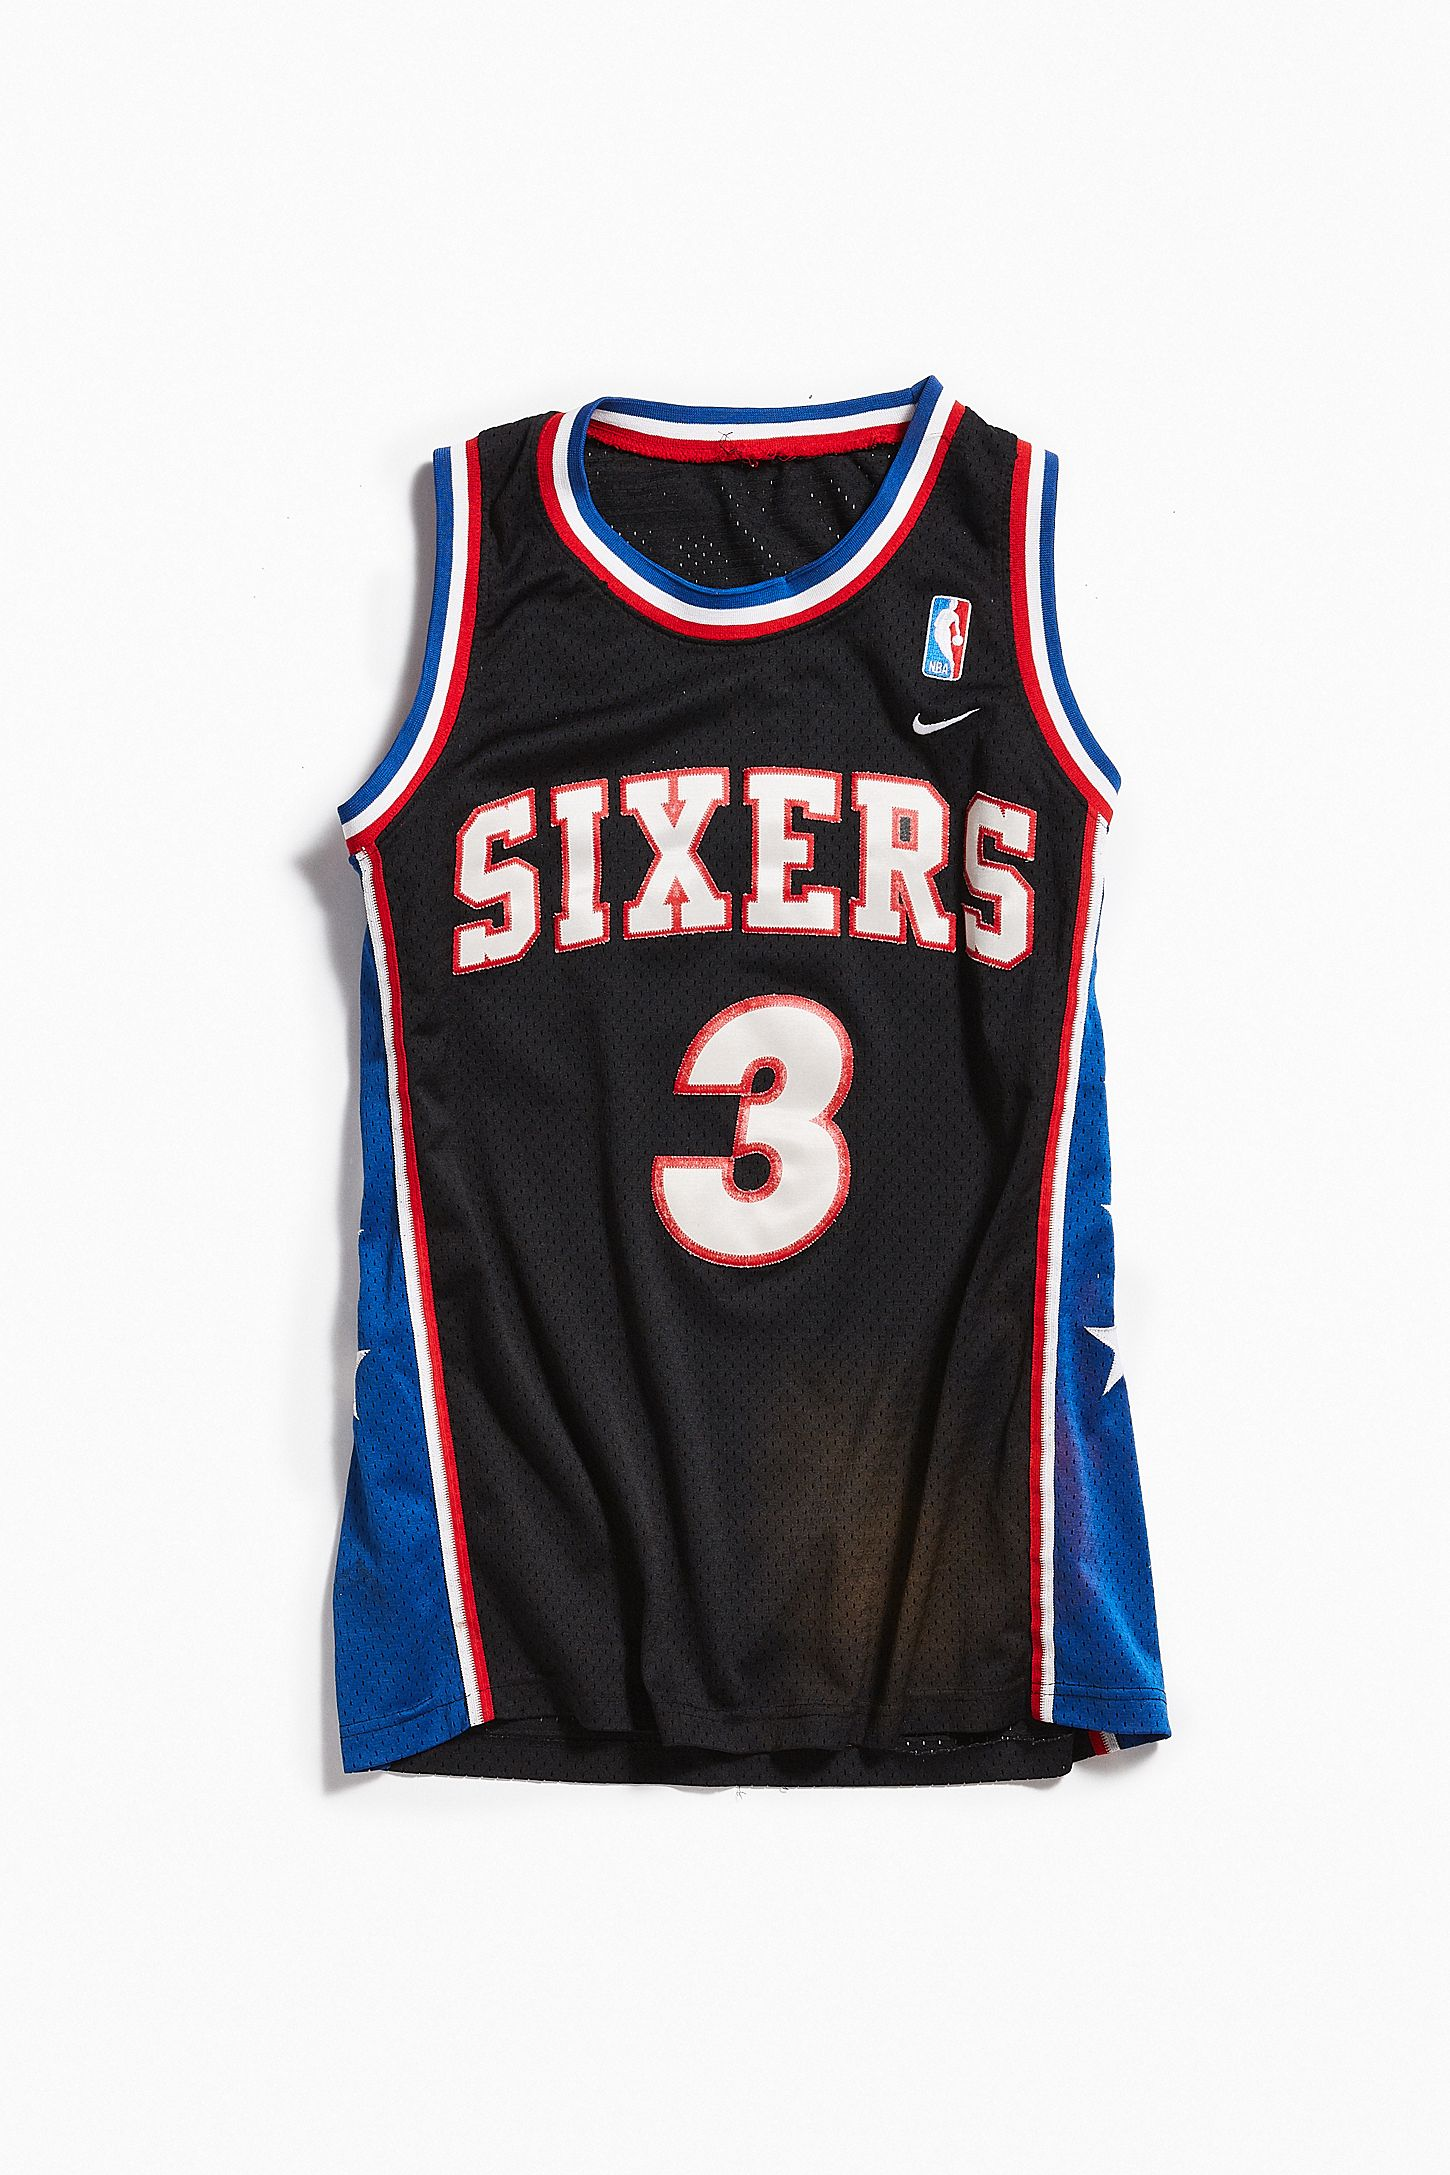 huge selection of c8764 b34e1 Vintage Nike Allen Iverson Sixers Basketball Jersey